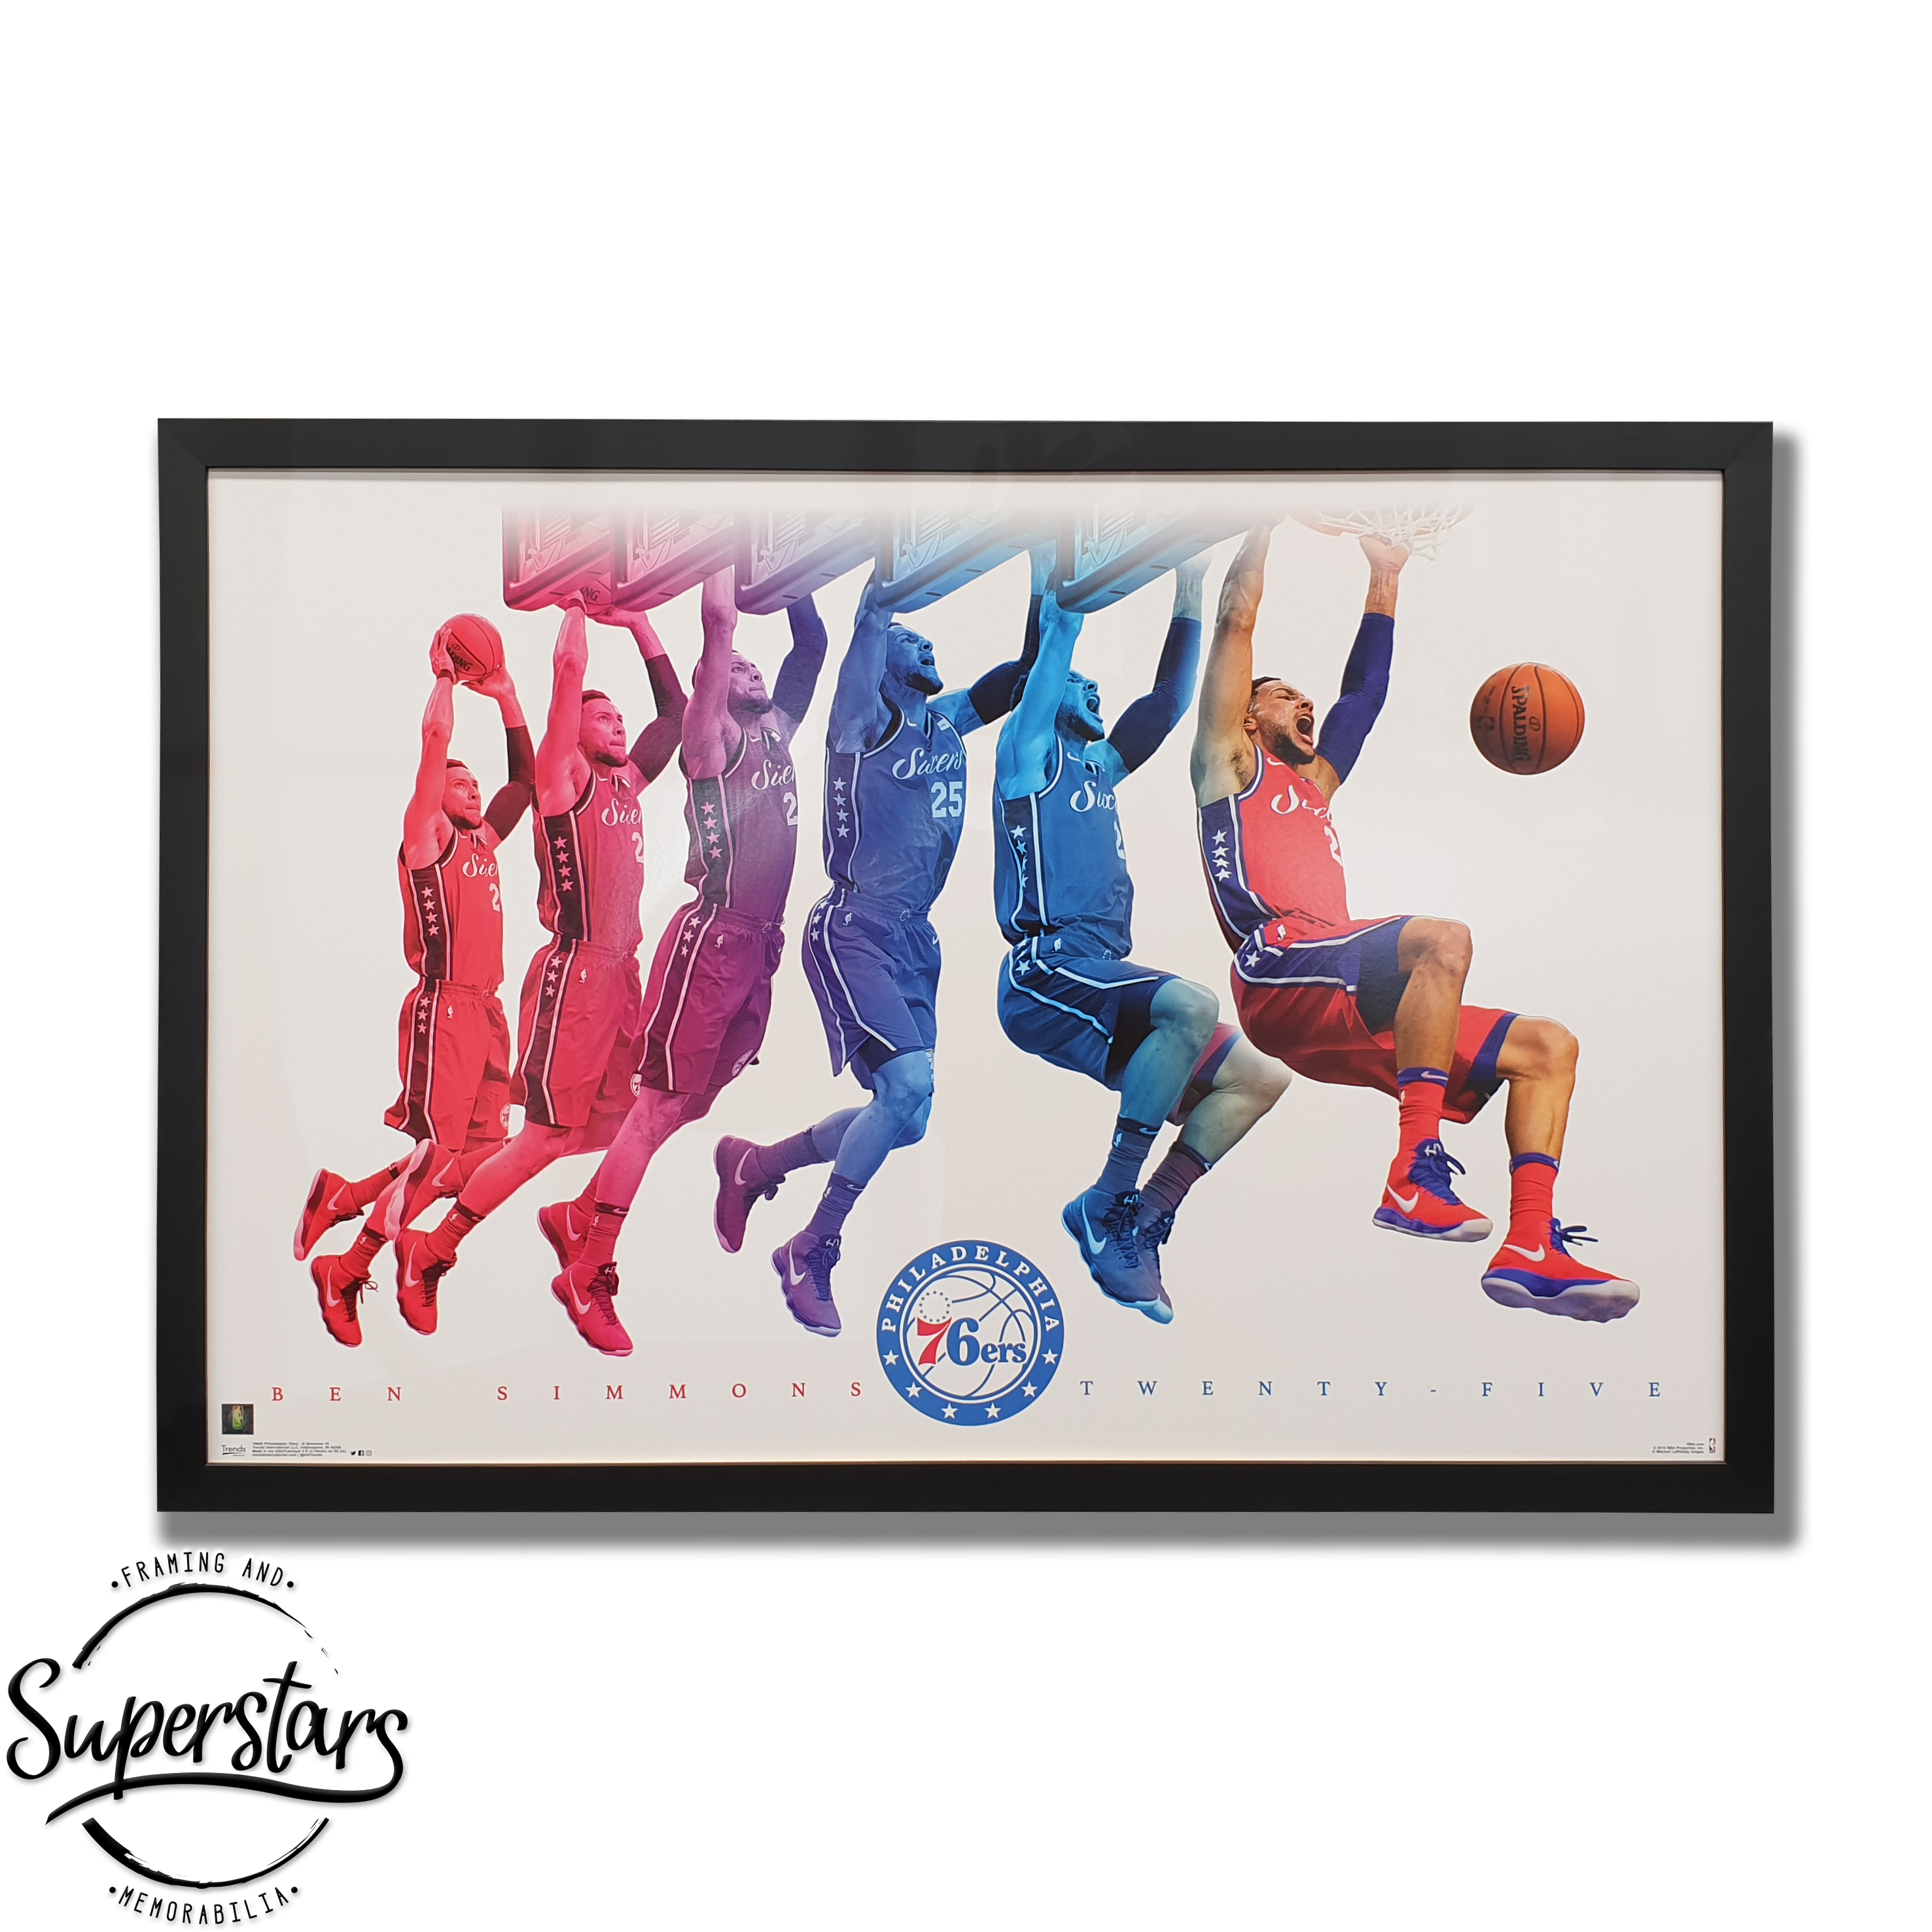 Poster of Ben Simmons slam dunk with frame